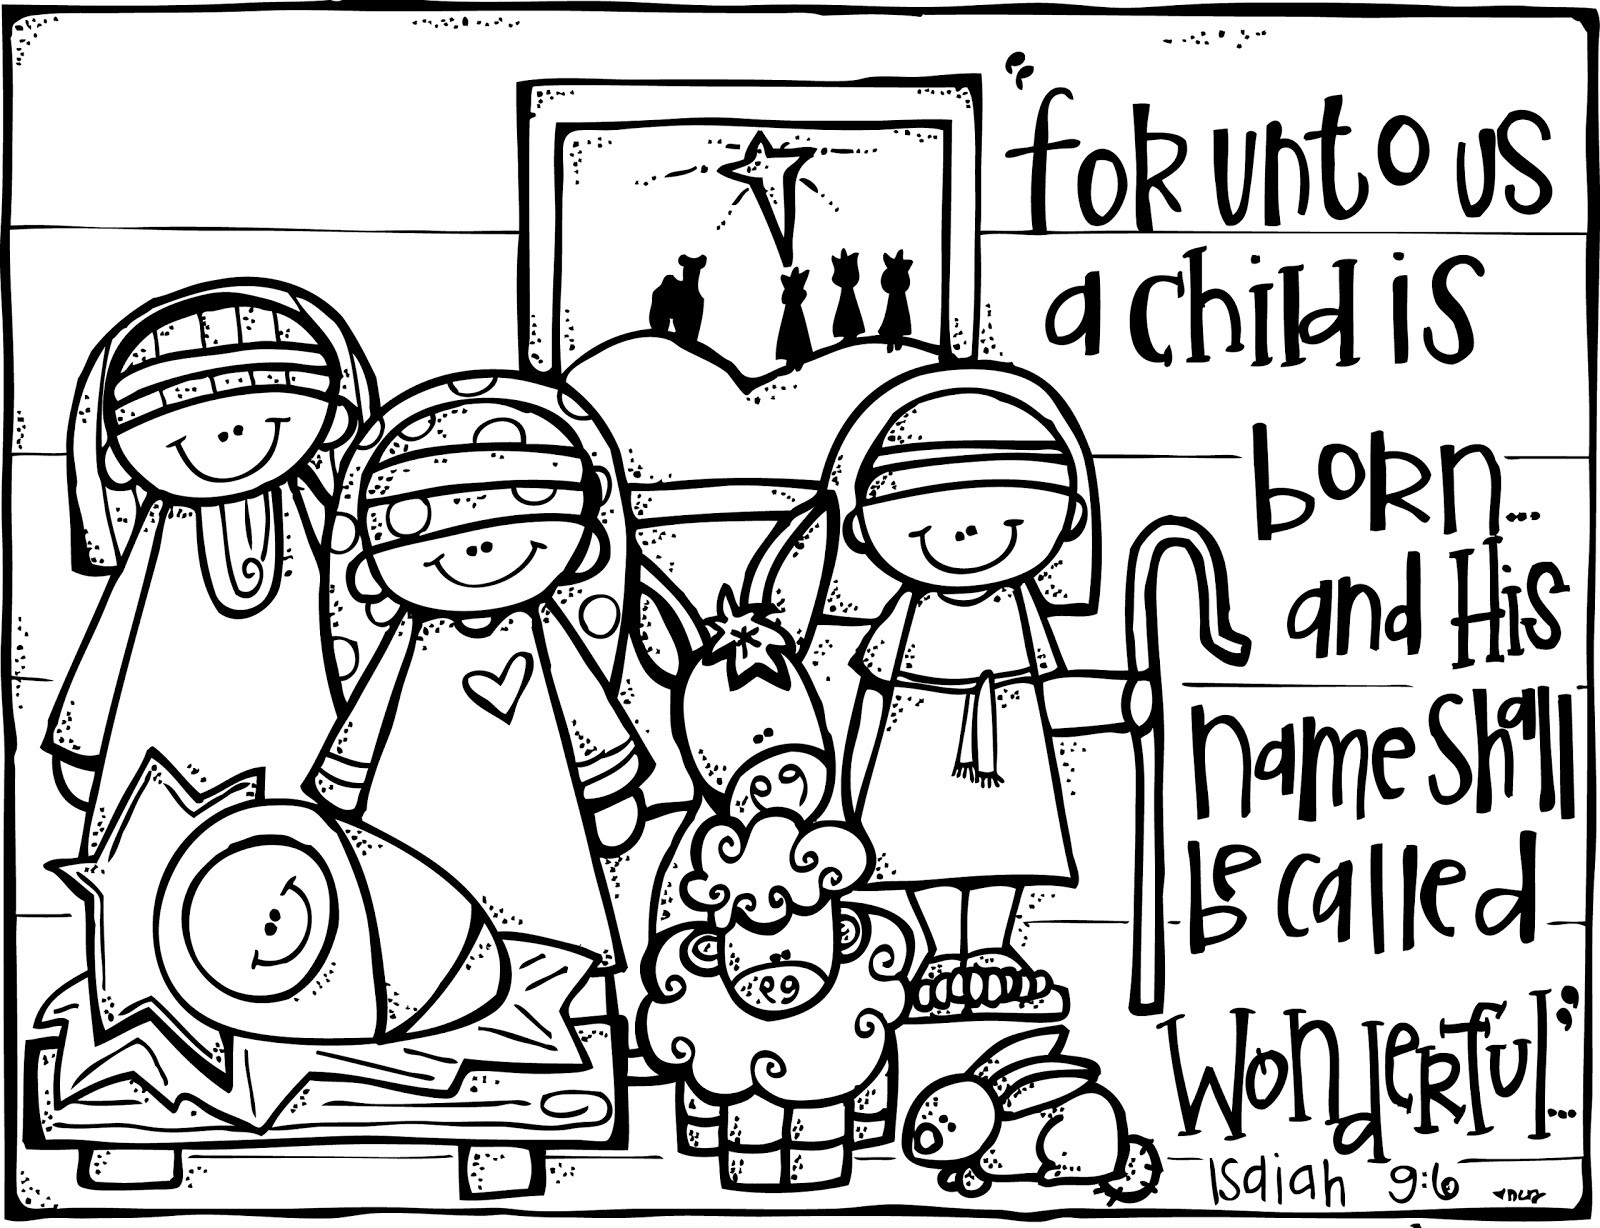 Best ideas about Christmas Christian Coloring Pages For Kids . Save or Pin MelonHeadz Freebies Christmas Now.